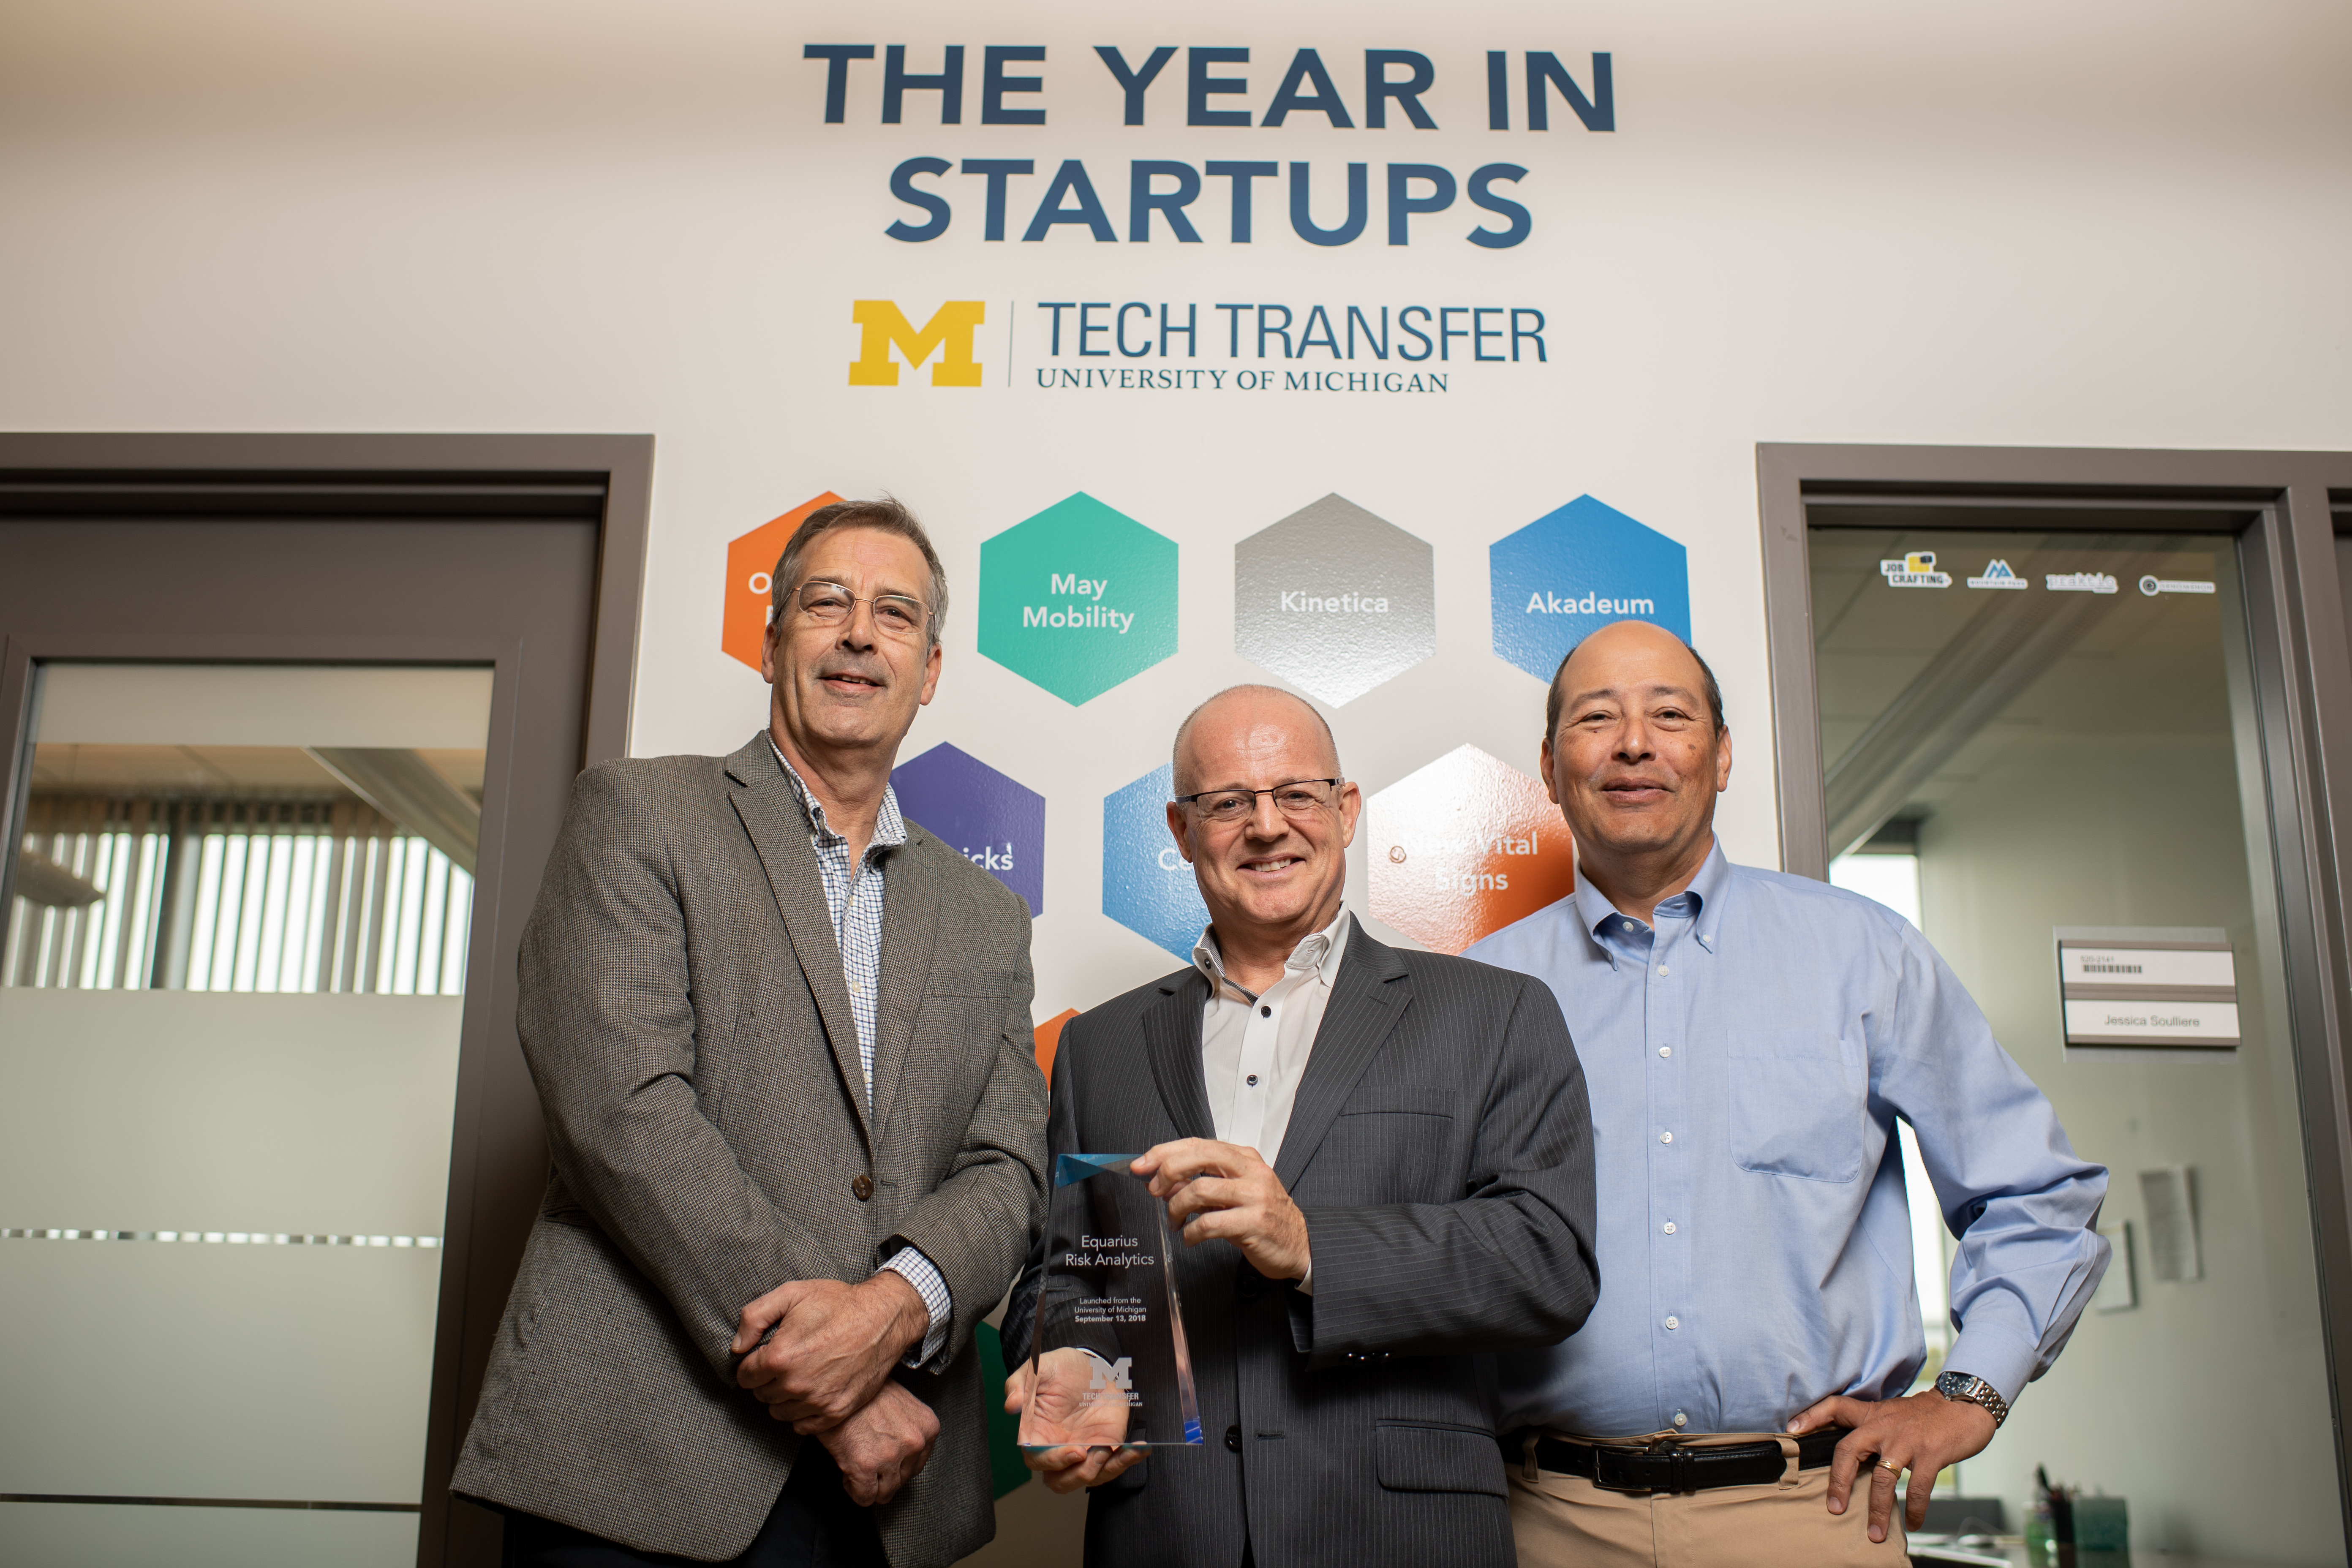 (From left) Greg Peterson of LimnoTech, Peter Adriaens, U-M business and engineering professor, and Tad Slawecki of LimnoTech. Image courtesy: Tech Transfer